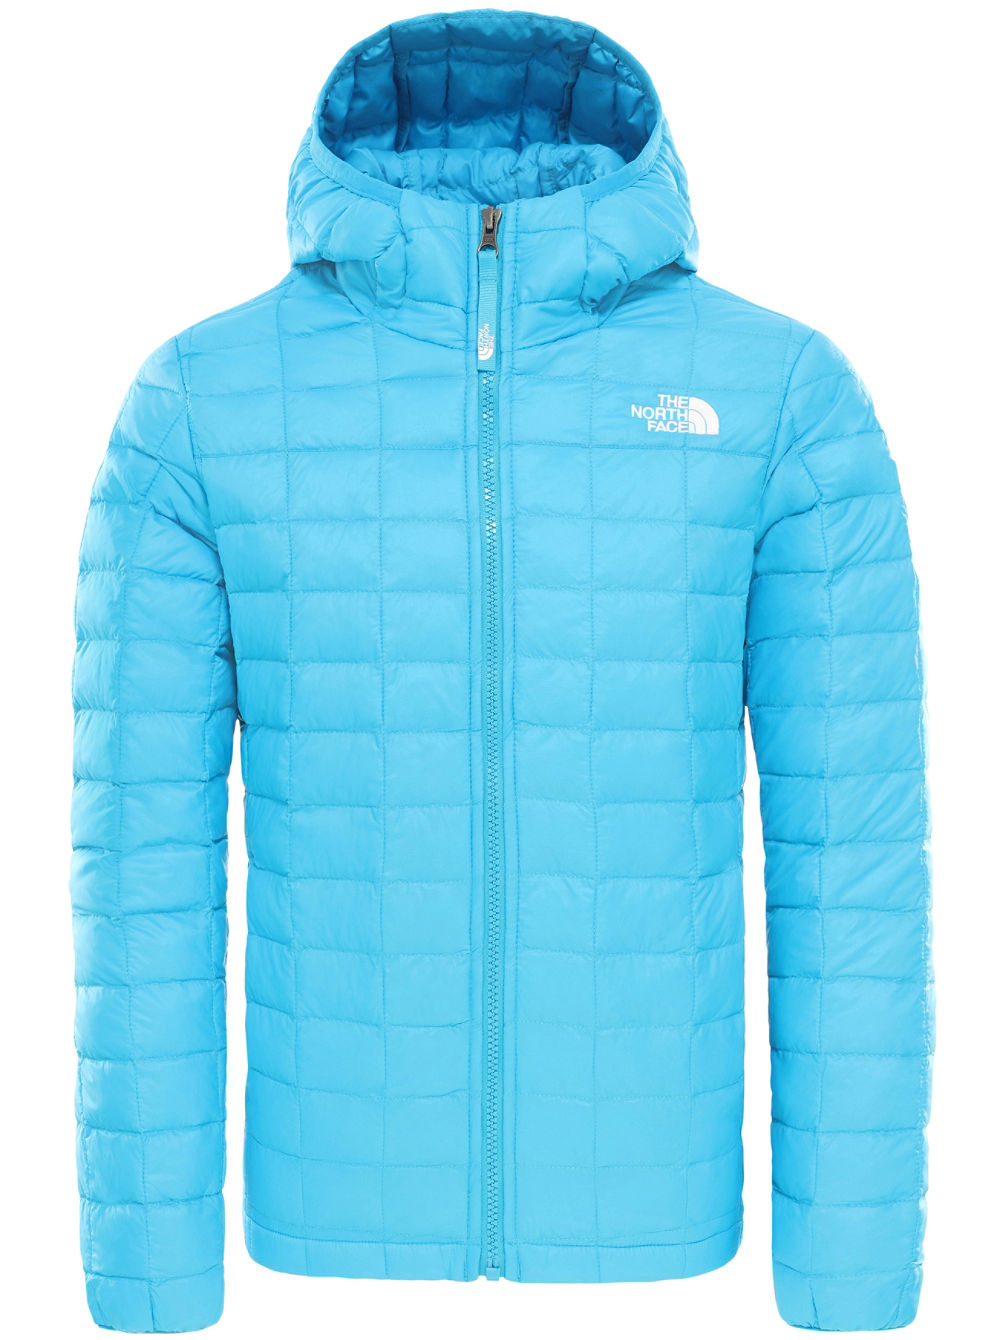 official store wholesale outlet huge selection of Thermoball Eco Hd Insulator Jacket